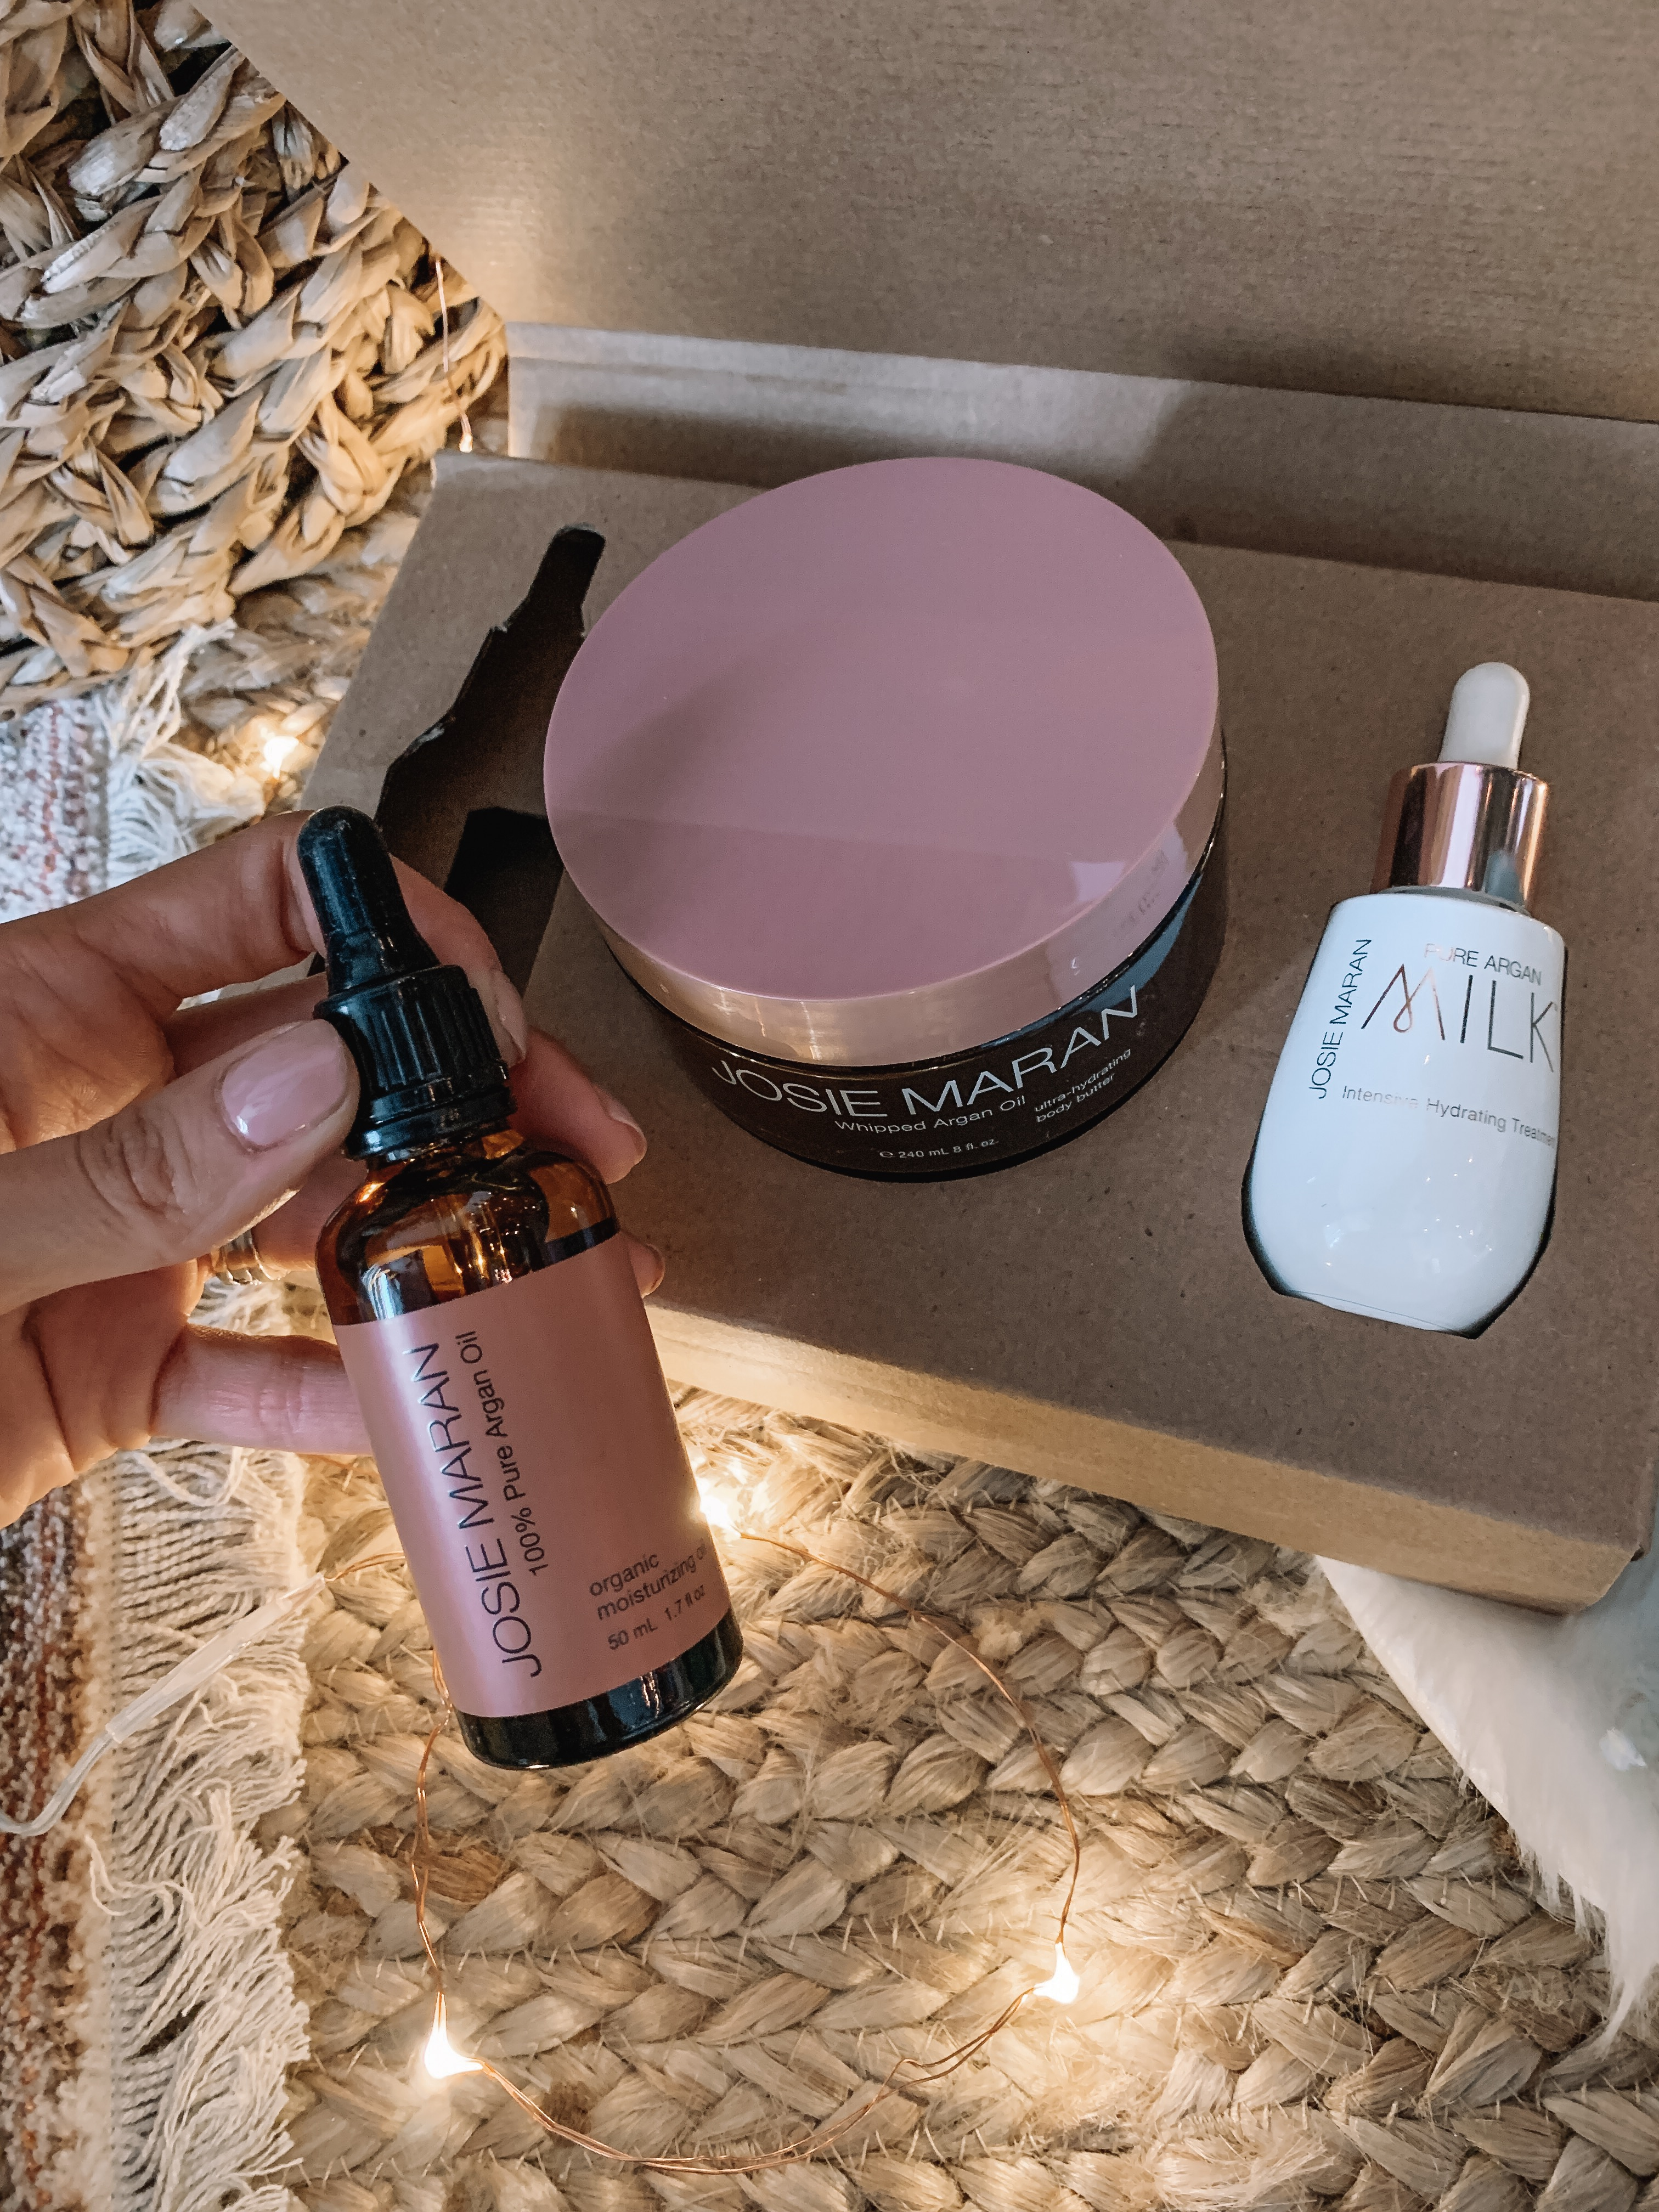 Josie maran customer choice collection holiday set, 100% argan oil, argan milk and whipped argan oil body butter, best of qvc gifts for her